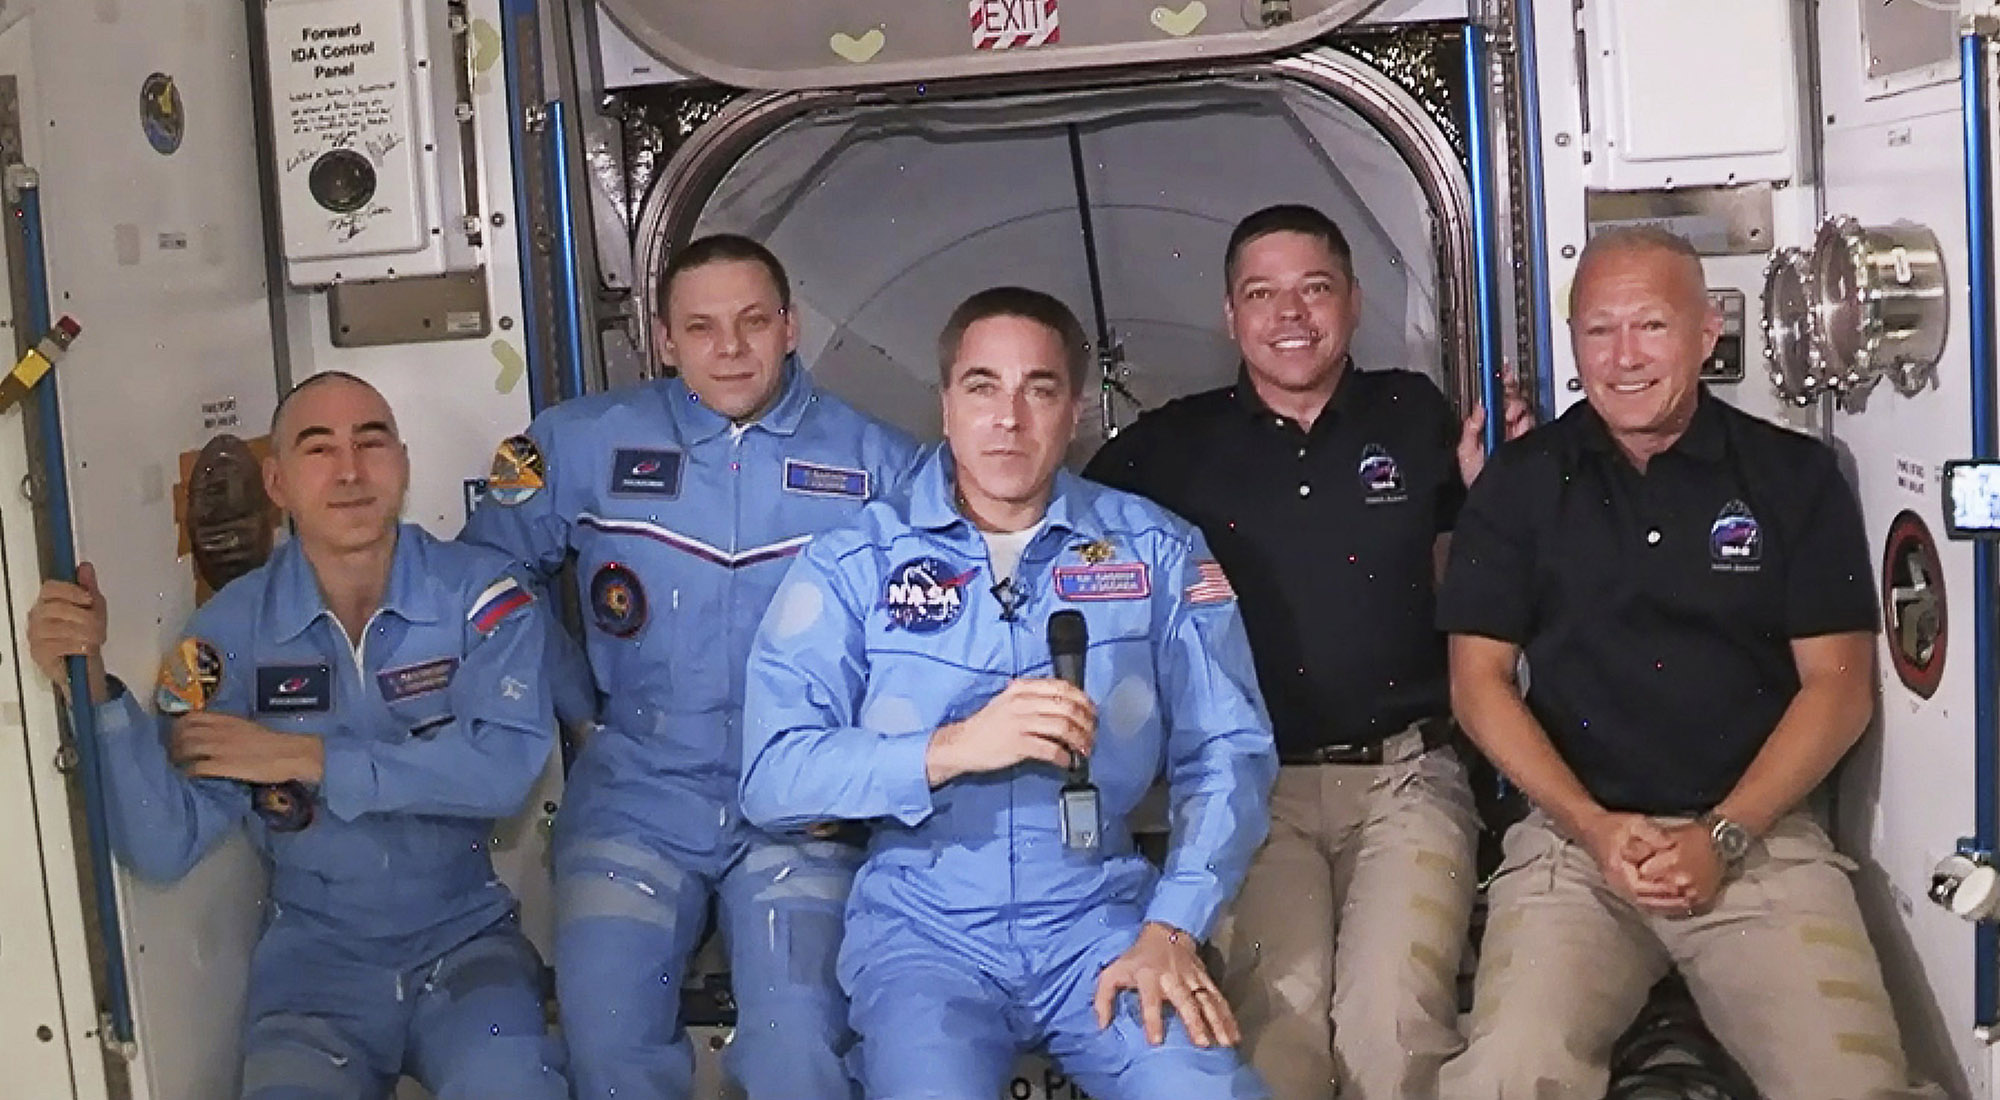 U.S Air Force (DET 3) • Support NASA Human Space Flight Operations • Inc SpaceX